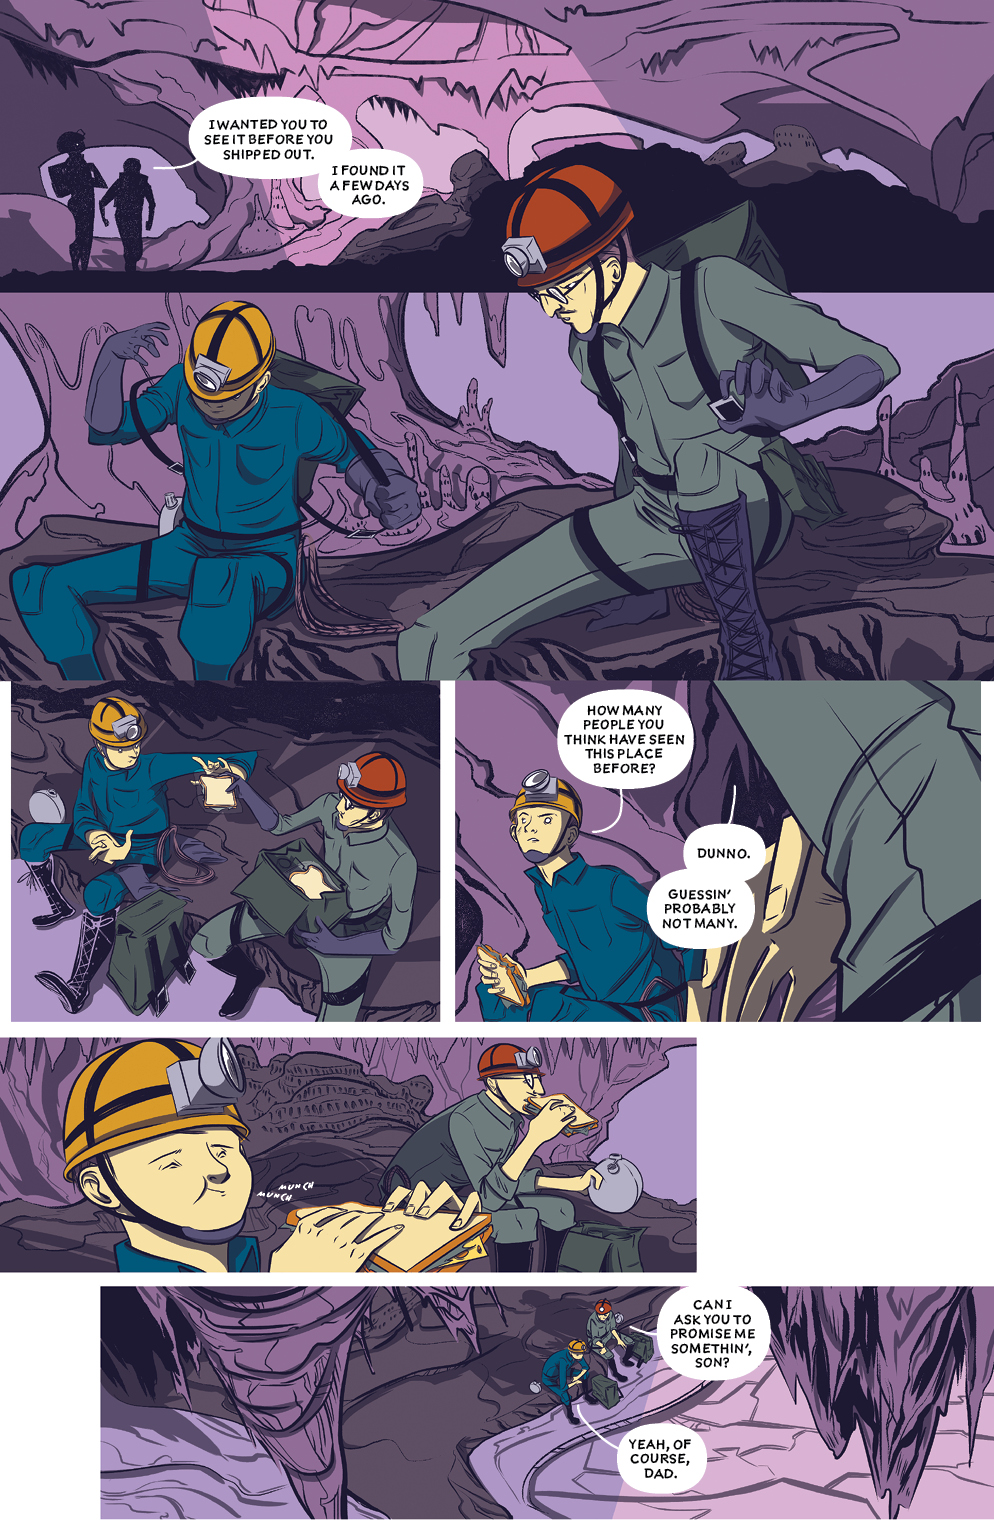 TunnelRat_Issue1_Pg3.jpg